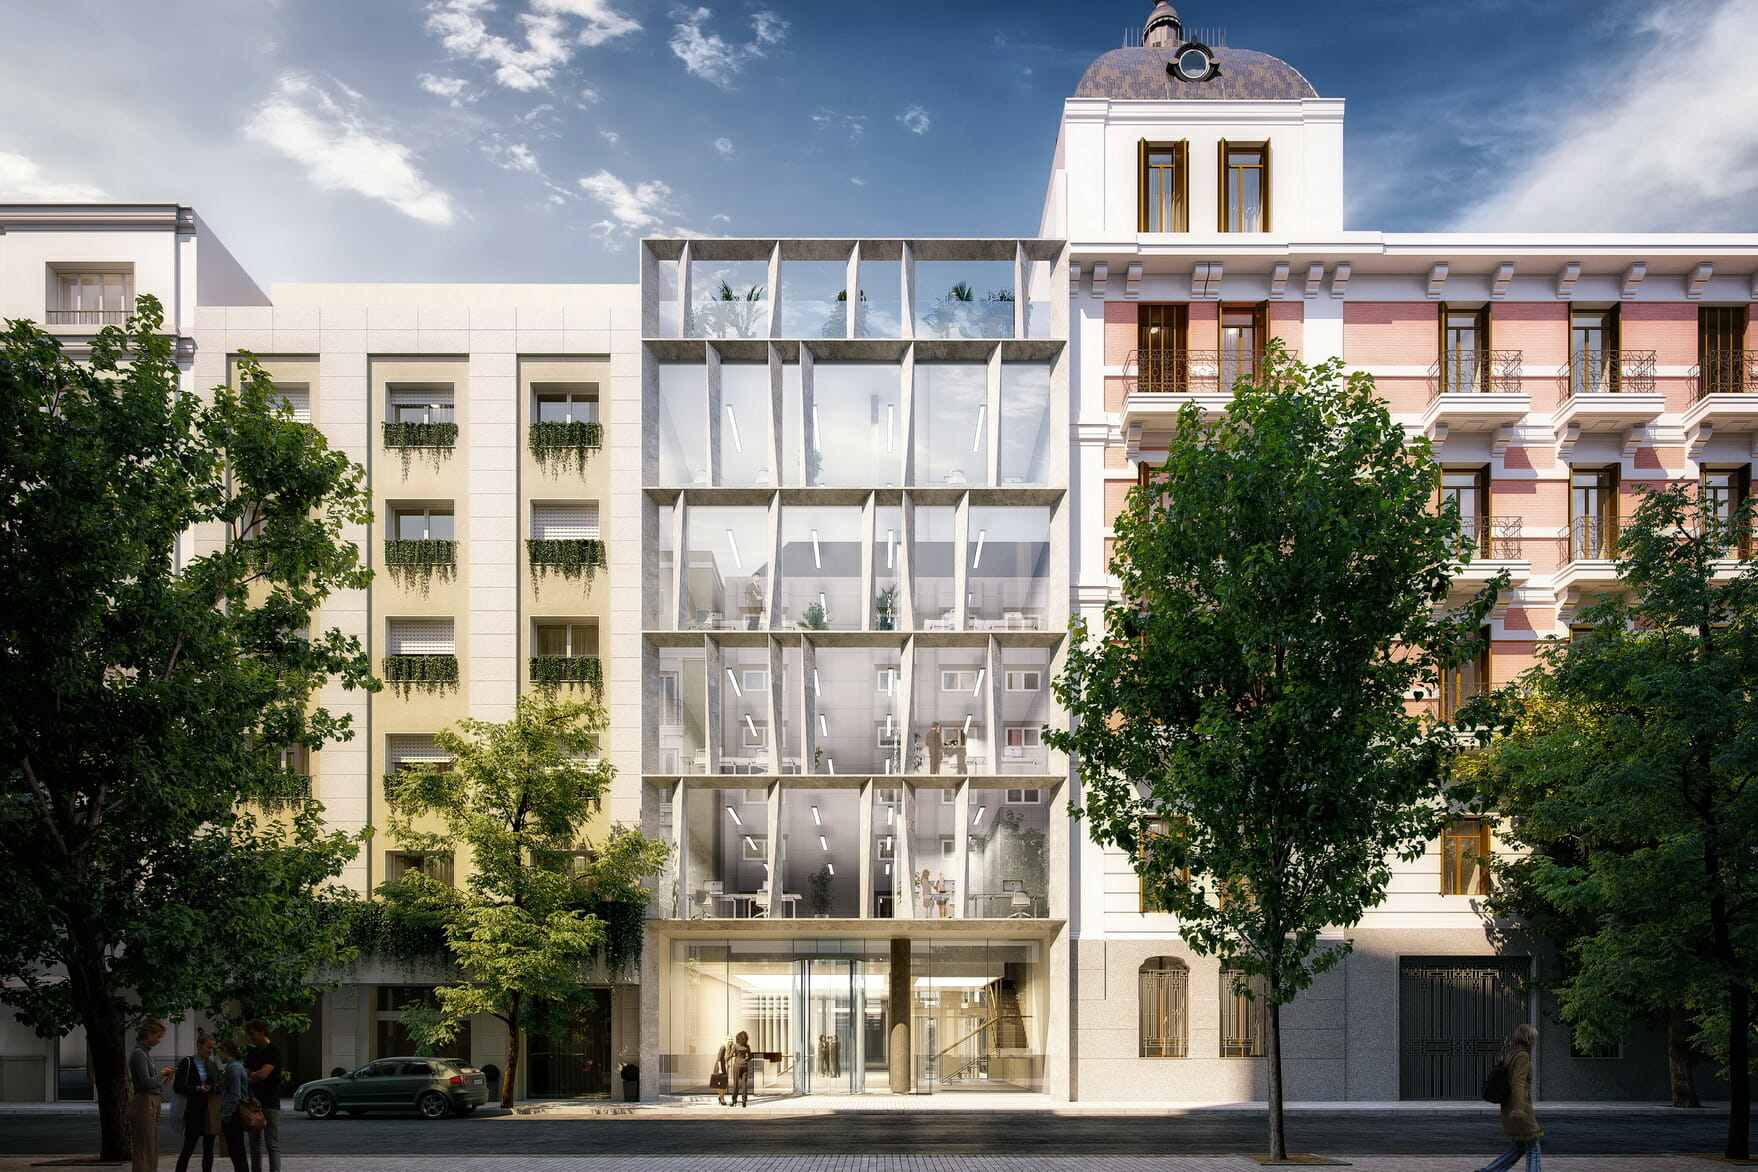 The refurbishment of offices in Amador de los Ríos (Madrid) has a license for its transformation